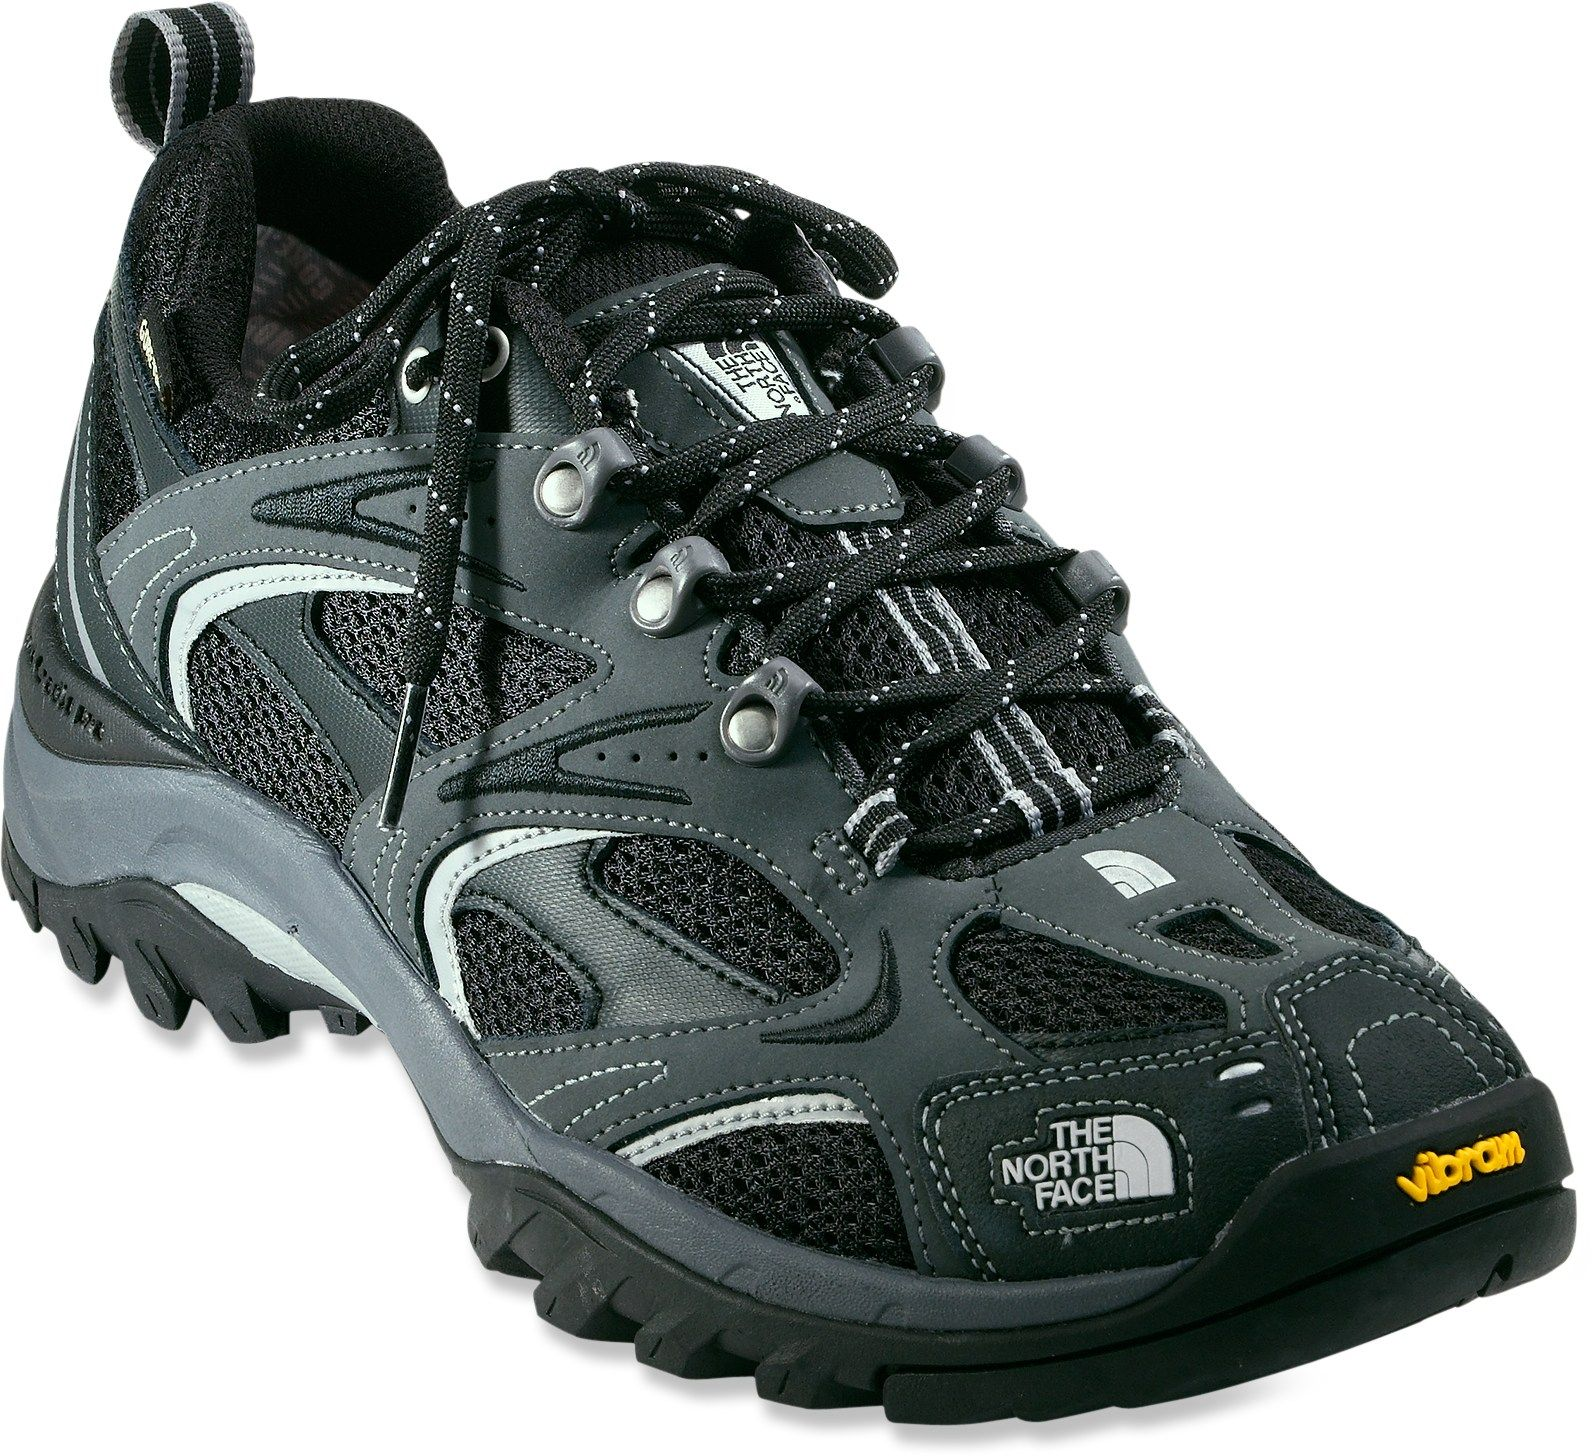 The North Face Hedgehog III GTX XCR Hiking Shoes - Men s  13059aea1